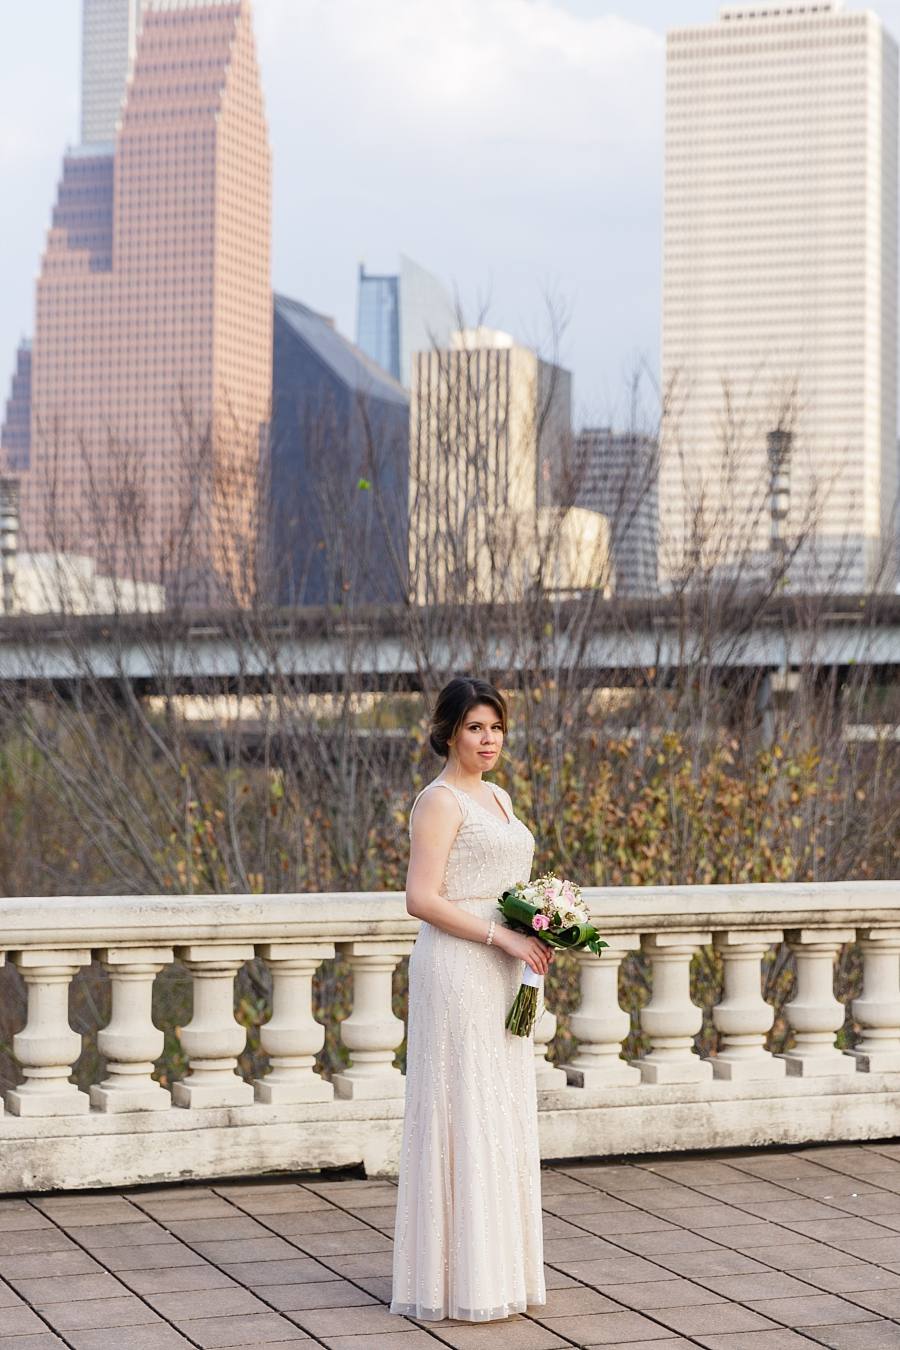 Stacy-Anderson-Photography-Houston-Courthouse-Vic-Anthony-Wedding-Photographer_0002.jpg